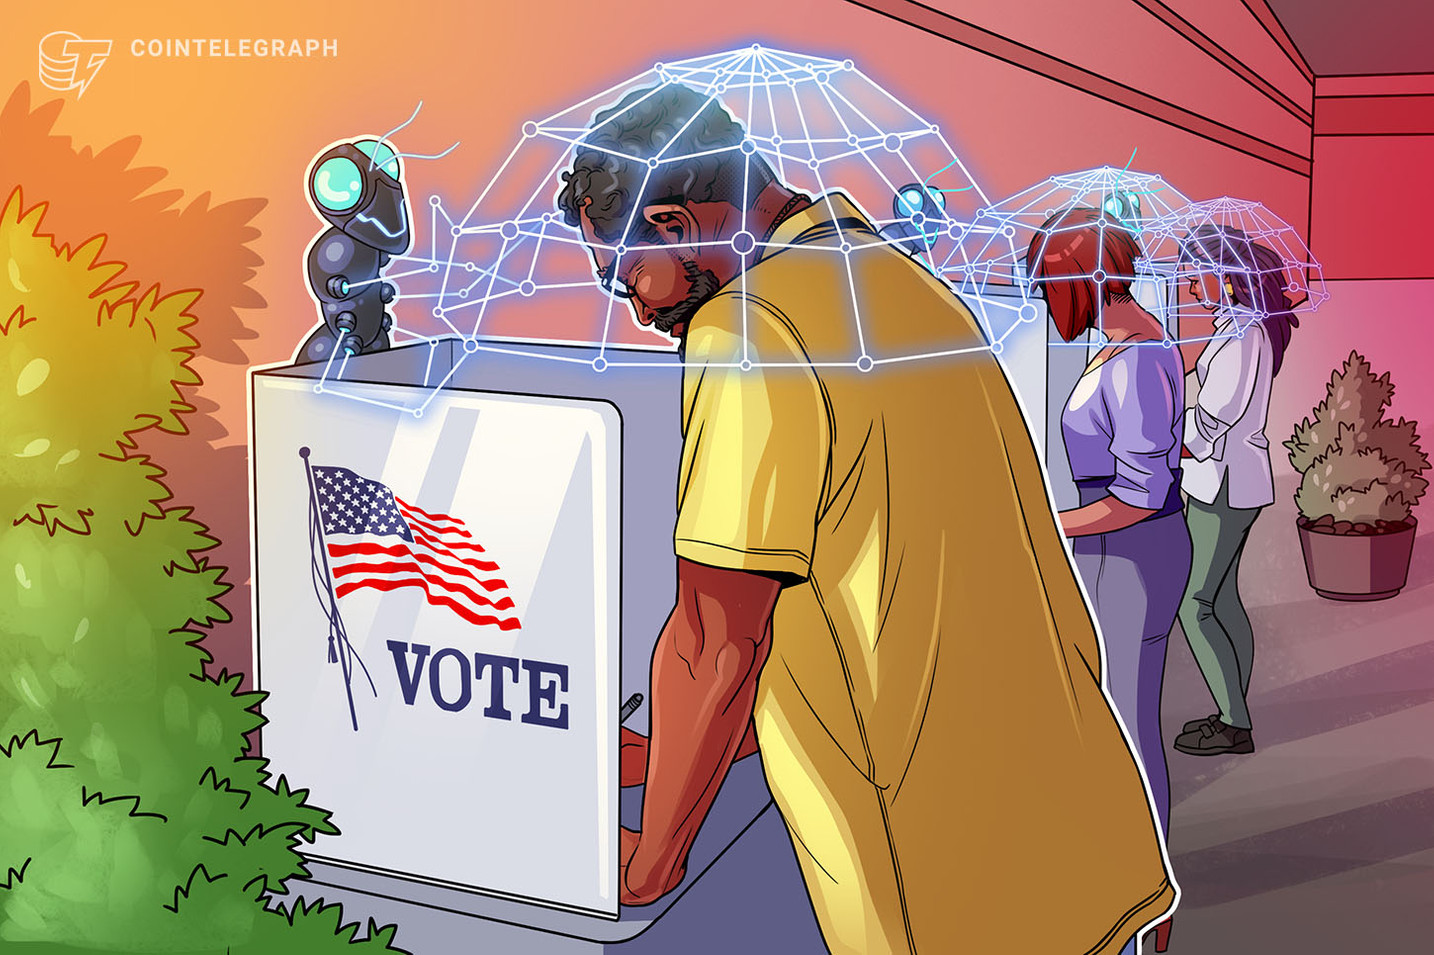 Blockchain voting is the alternative for trusted democratic elections